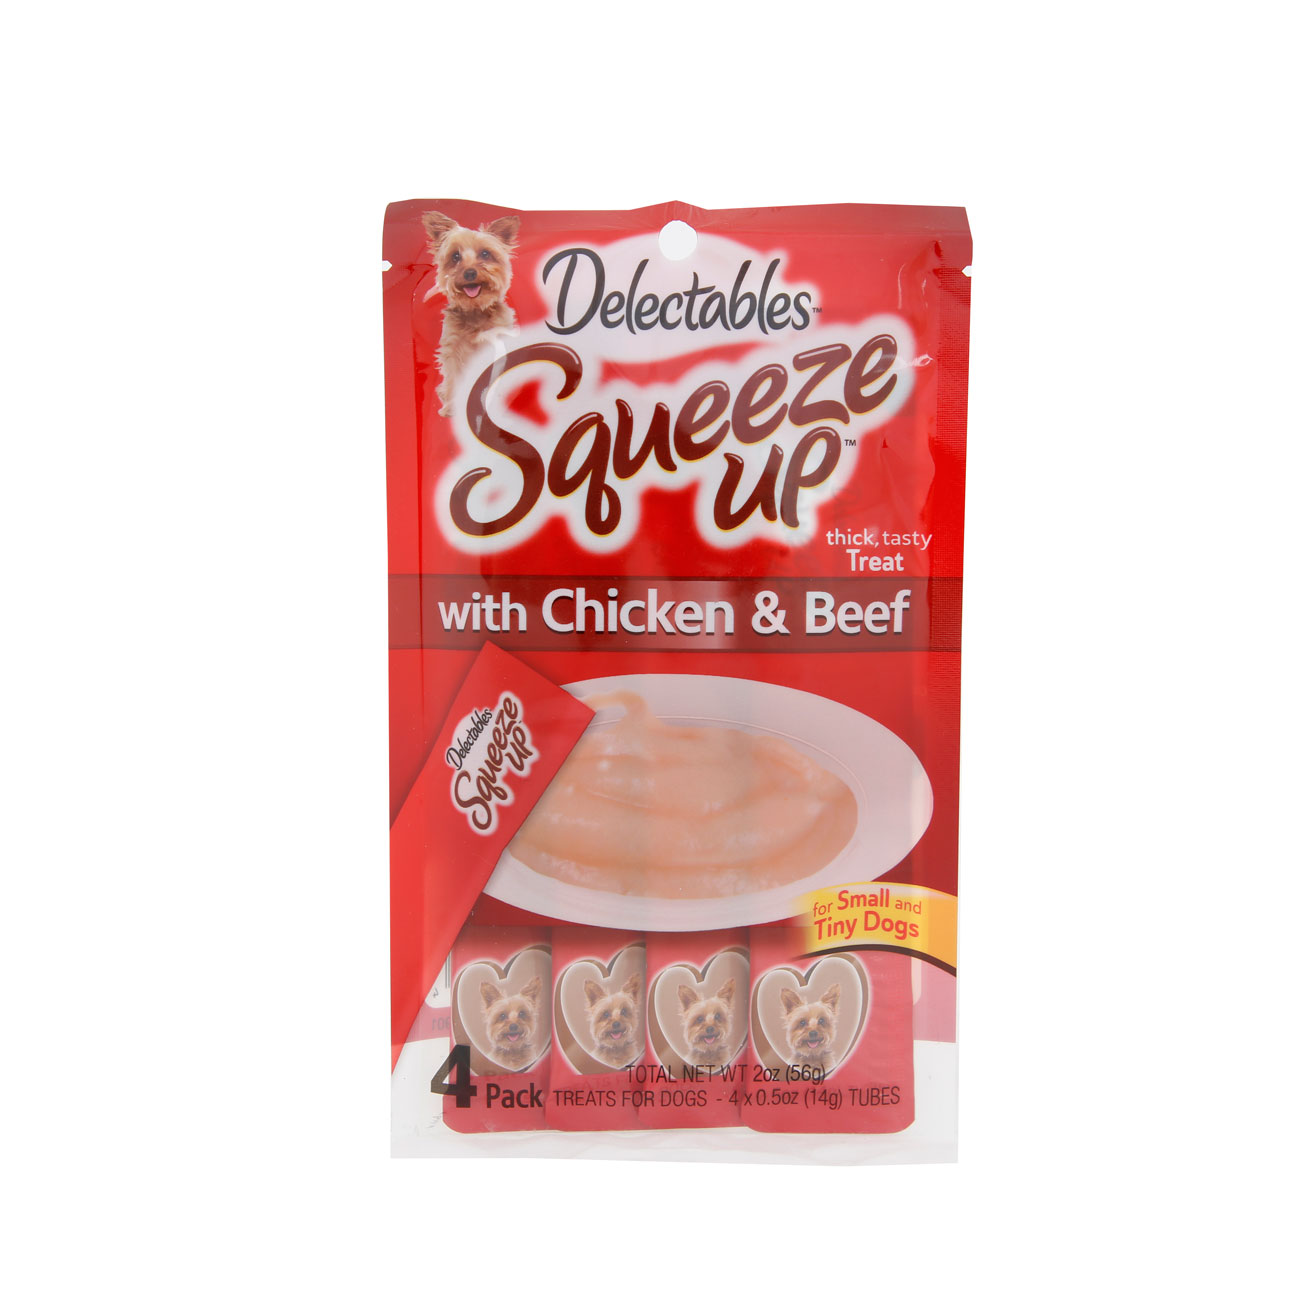 Hartz Delectables Squeeze Up for small dogs. Front of package. Hartz SKU# 3270011370